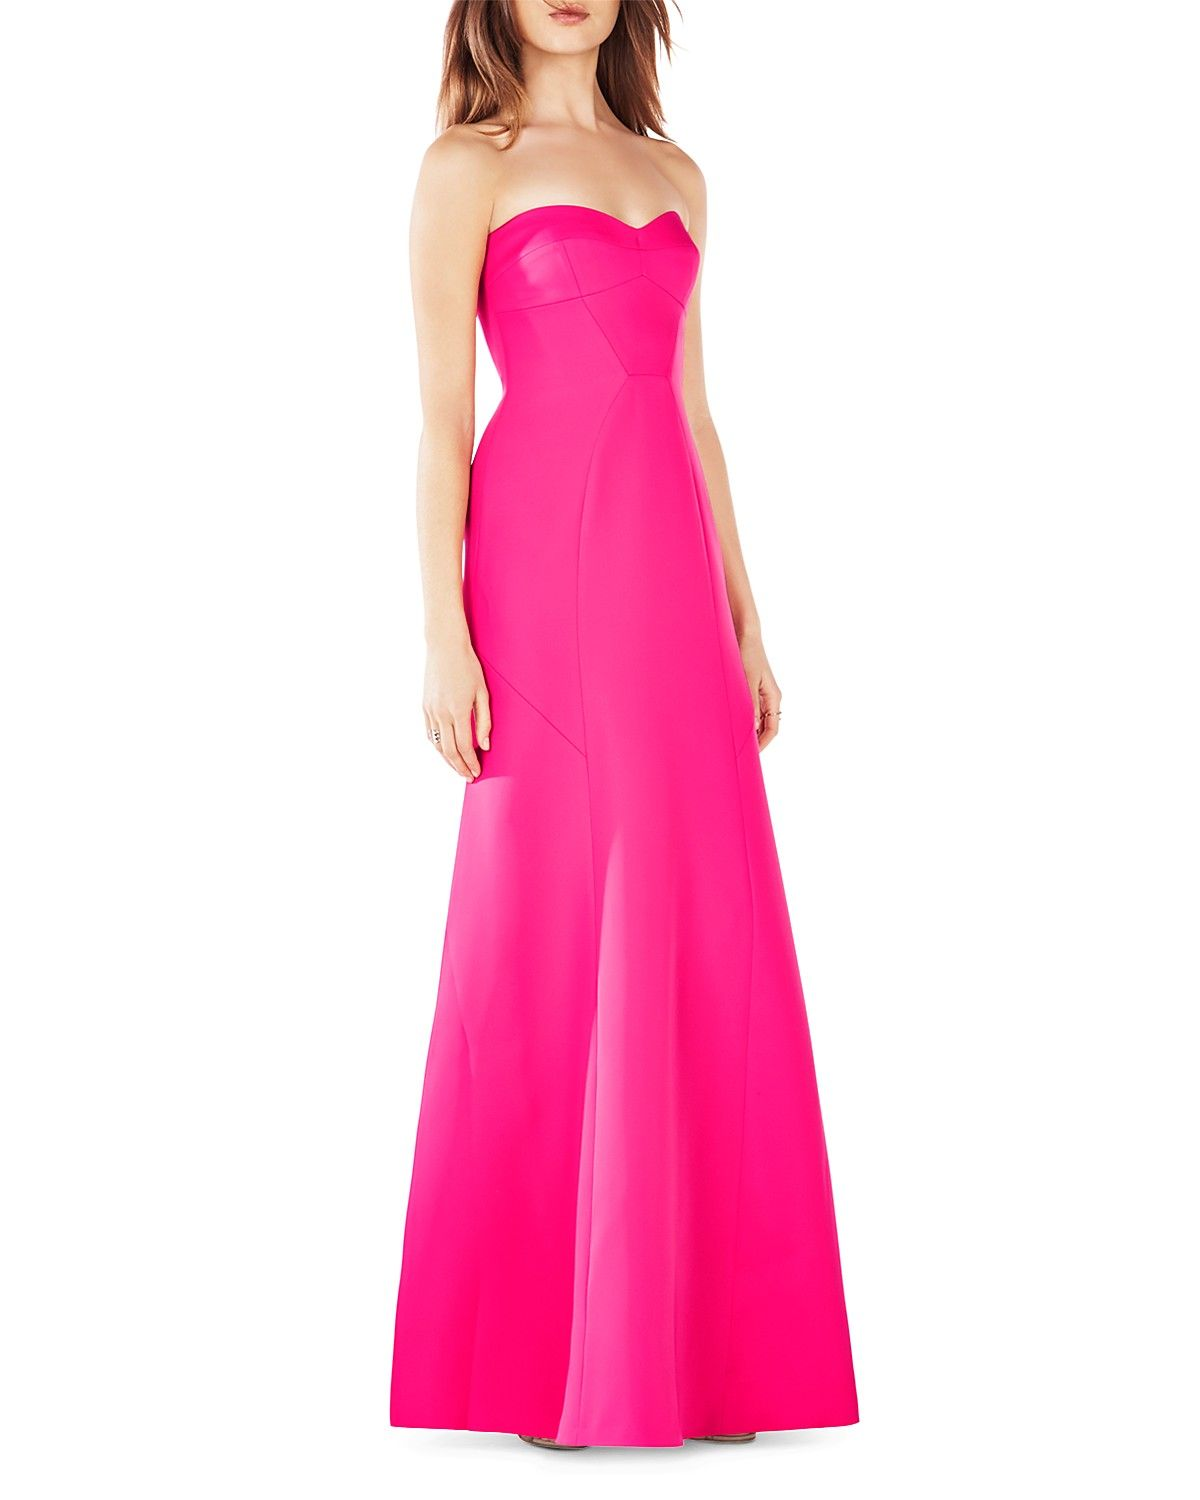 BCBGMAXAZRIA Strapless Gown - 100% Bloomingdale\'s Exclusive   Glam ...